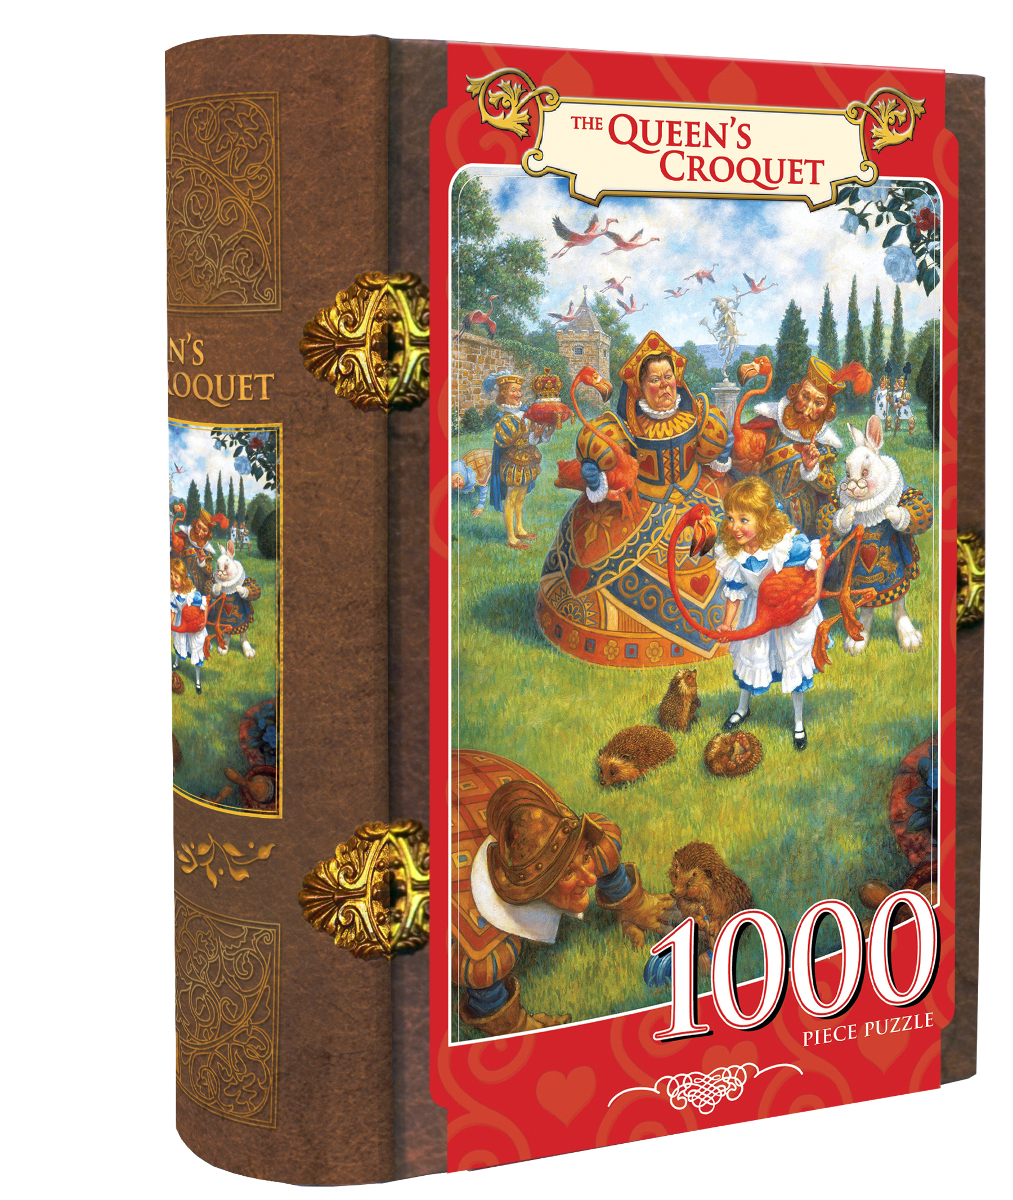 The Queen's Croquet Fantasy Collectible Packaging